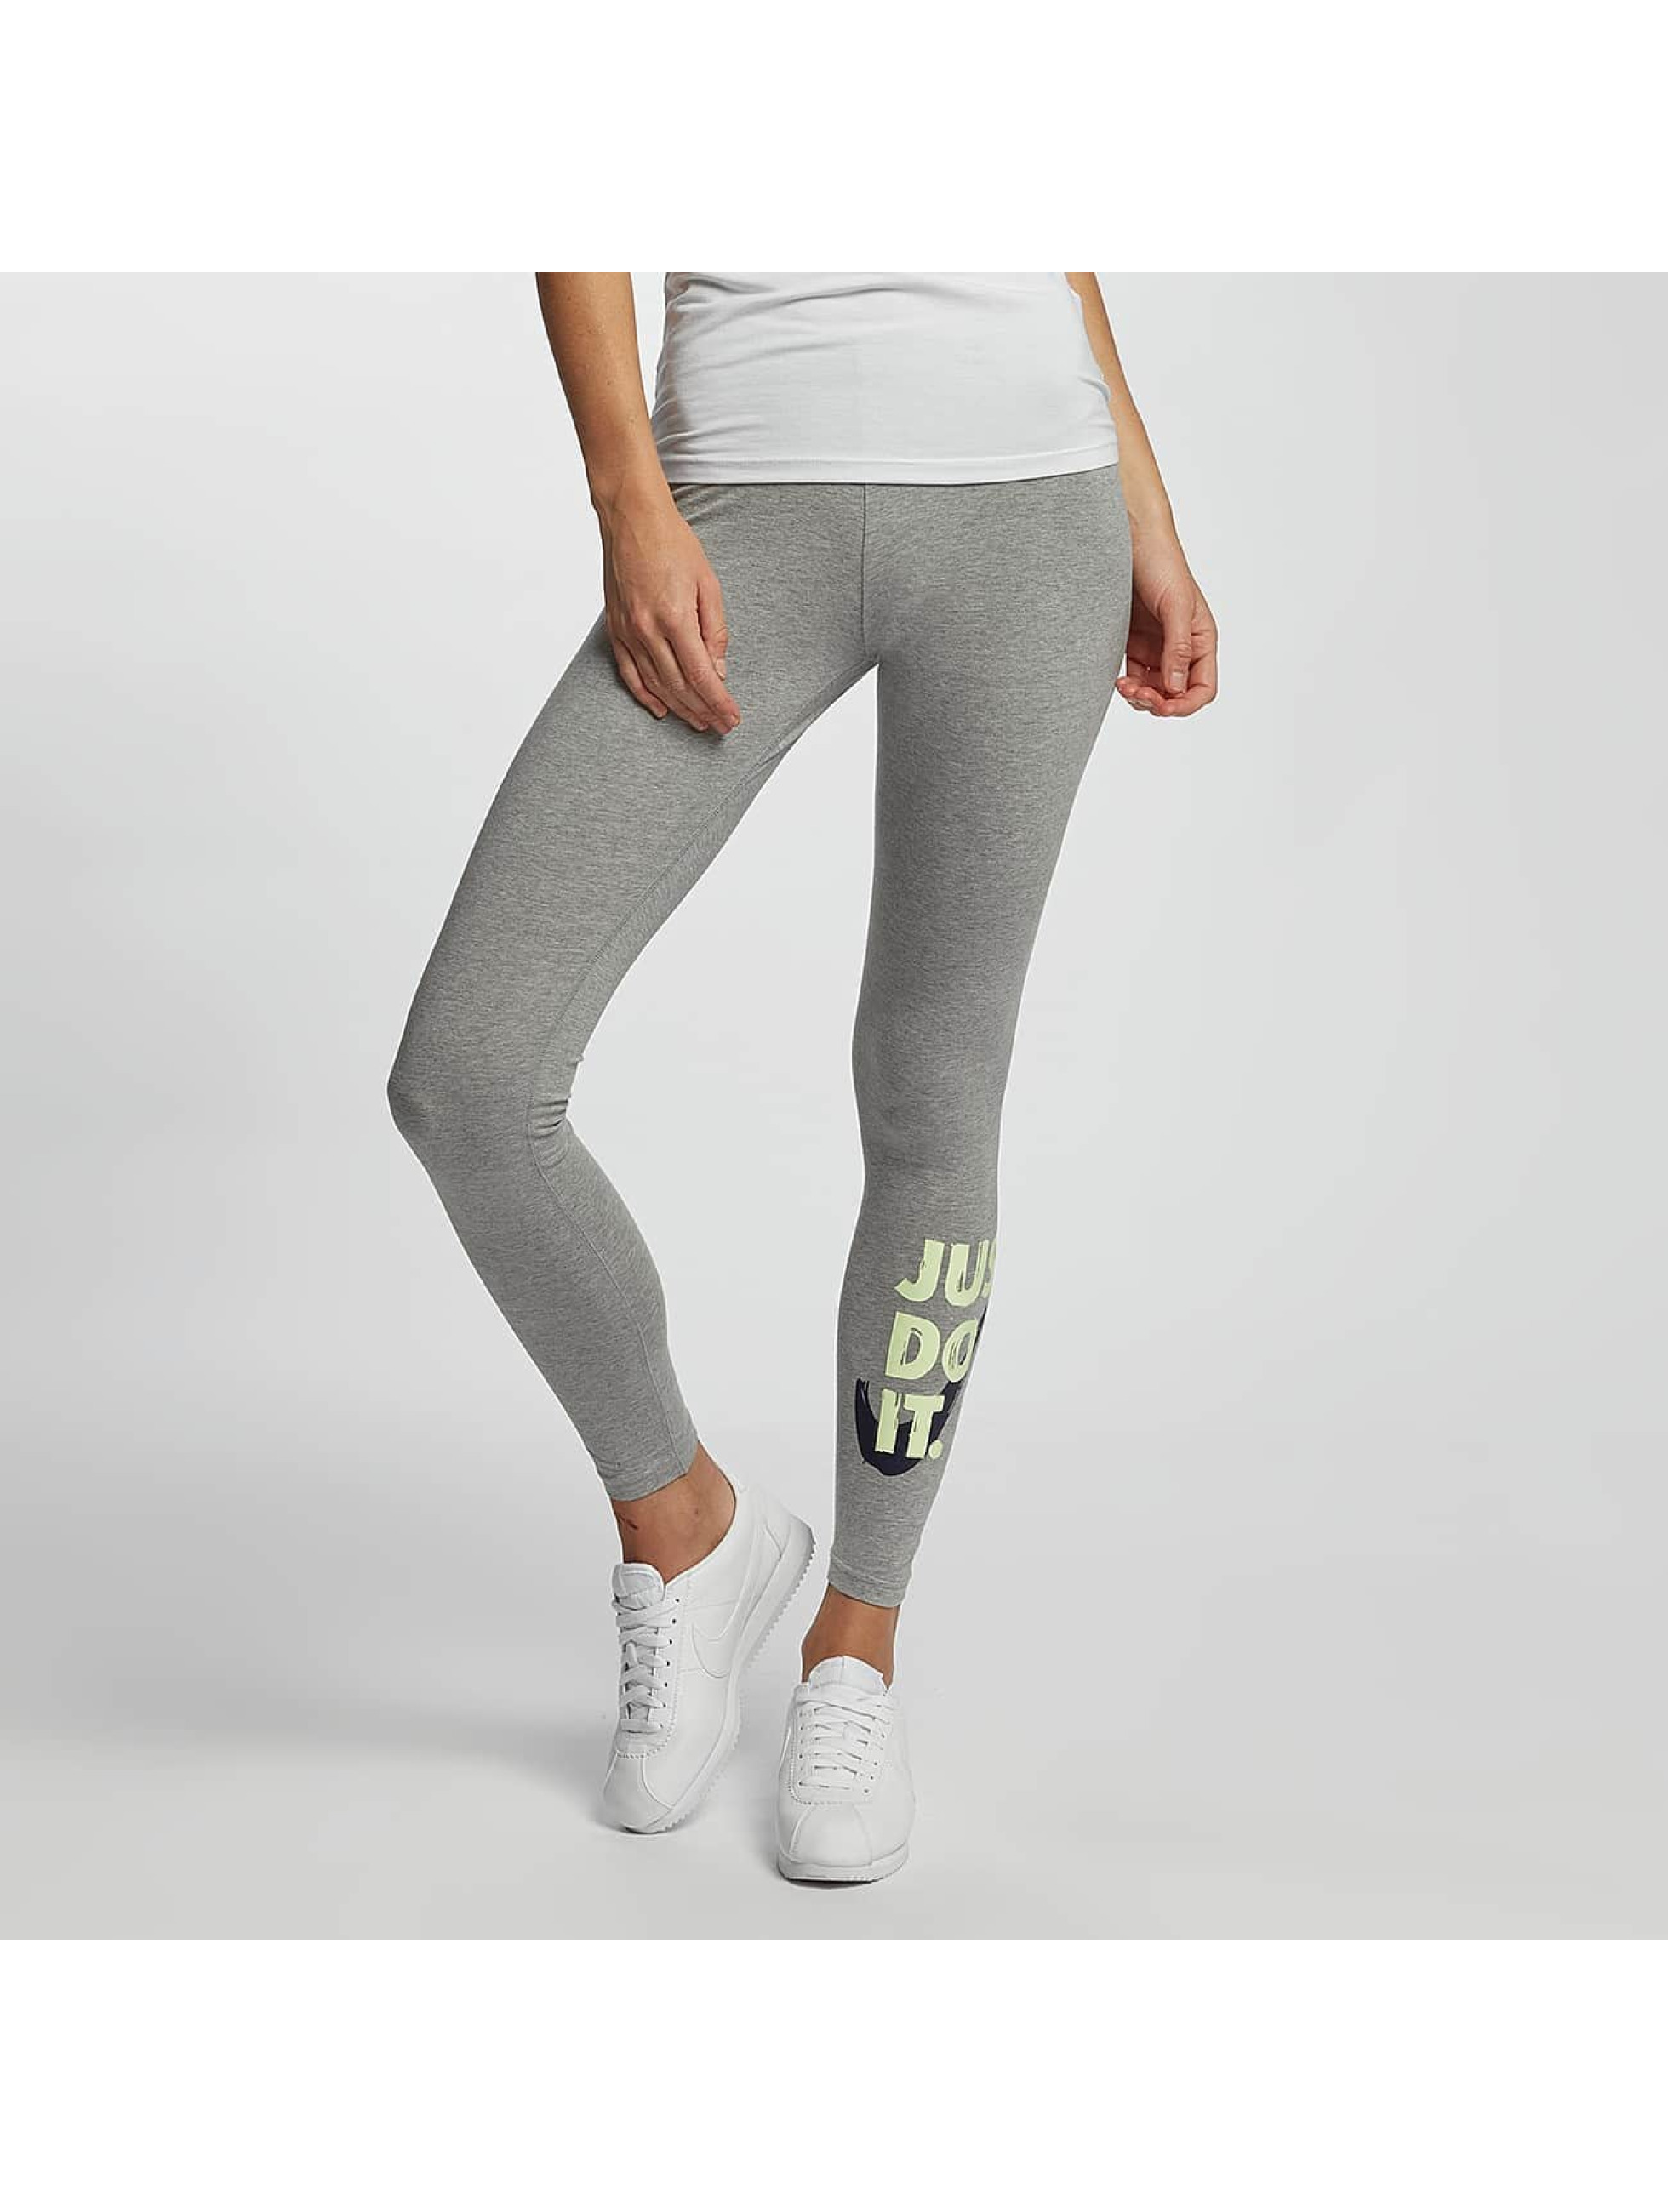 Nike Frauen Legging Club JDI in grau